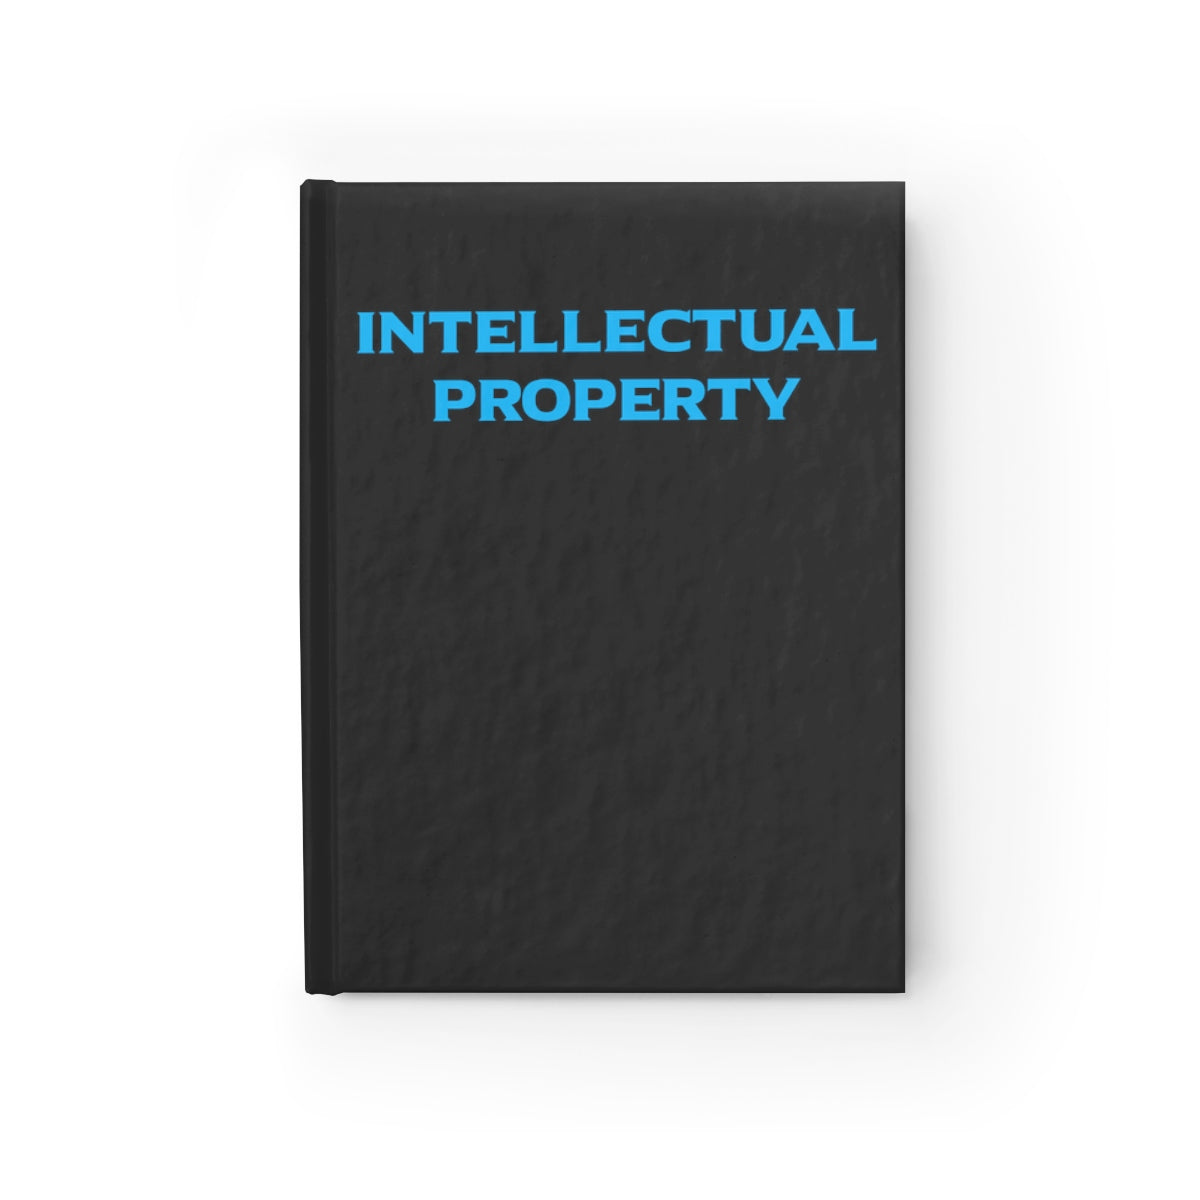 Intellectual Property (Ruled Line)